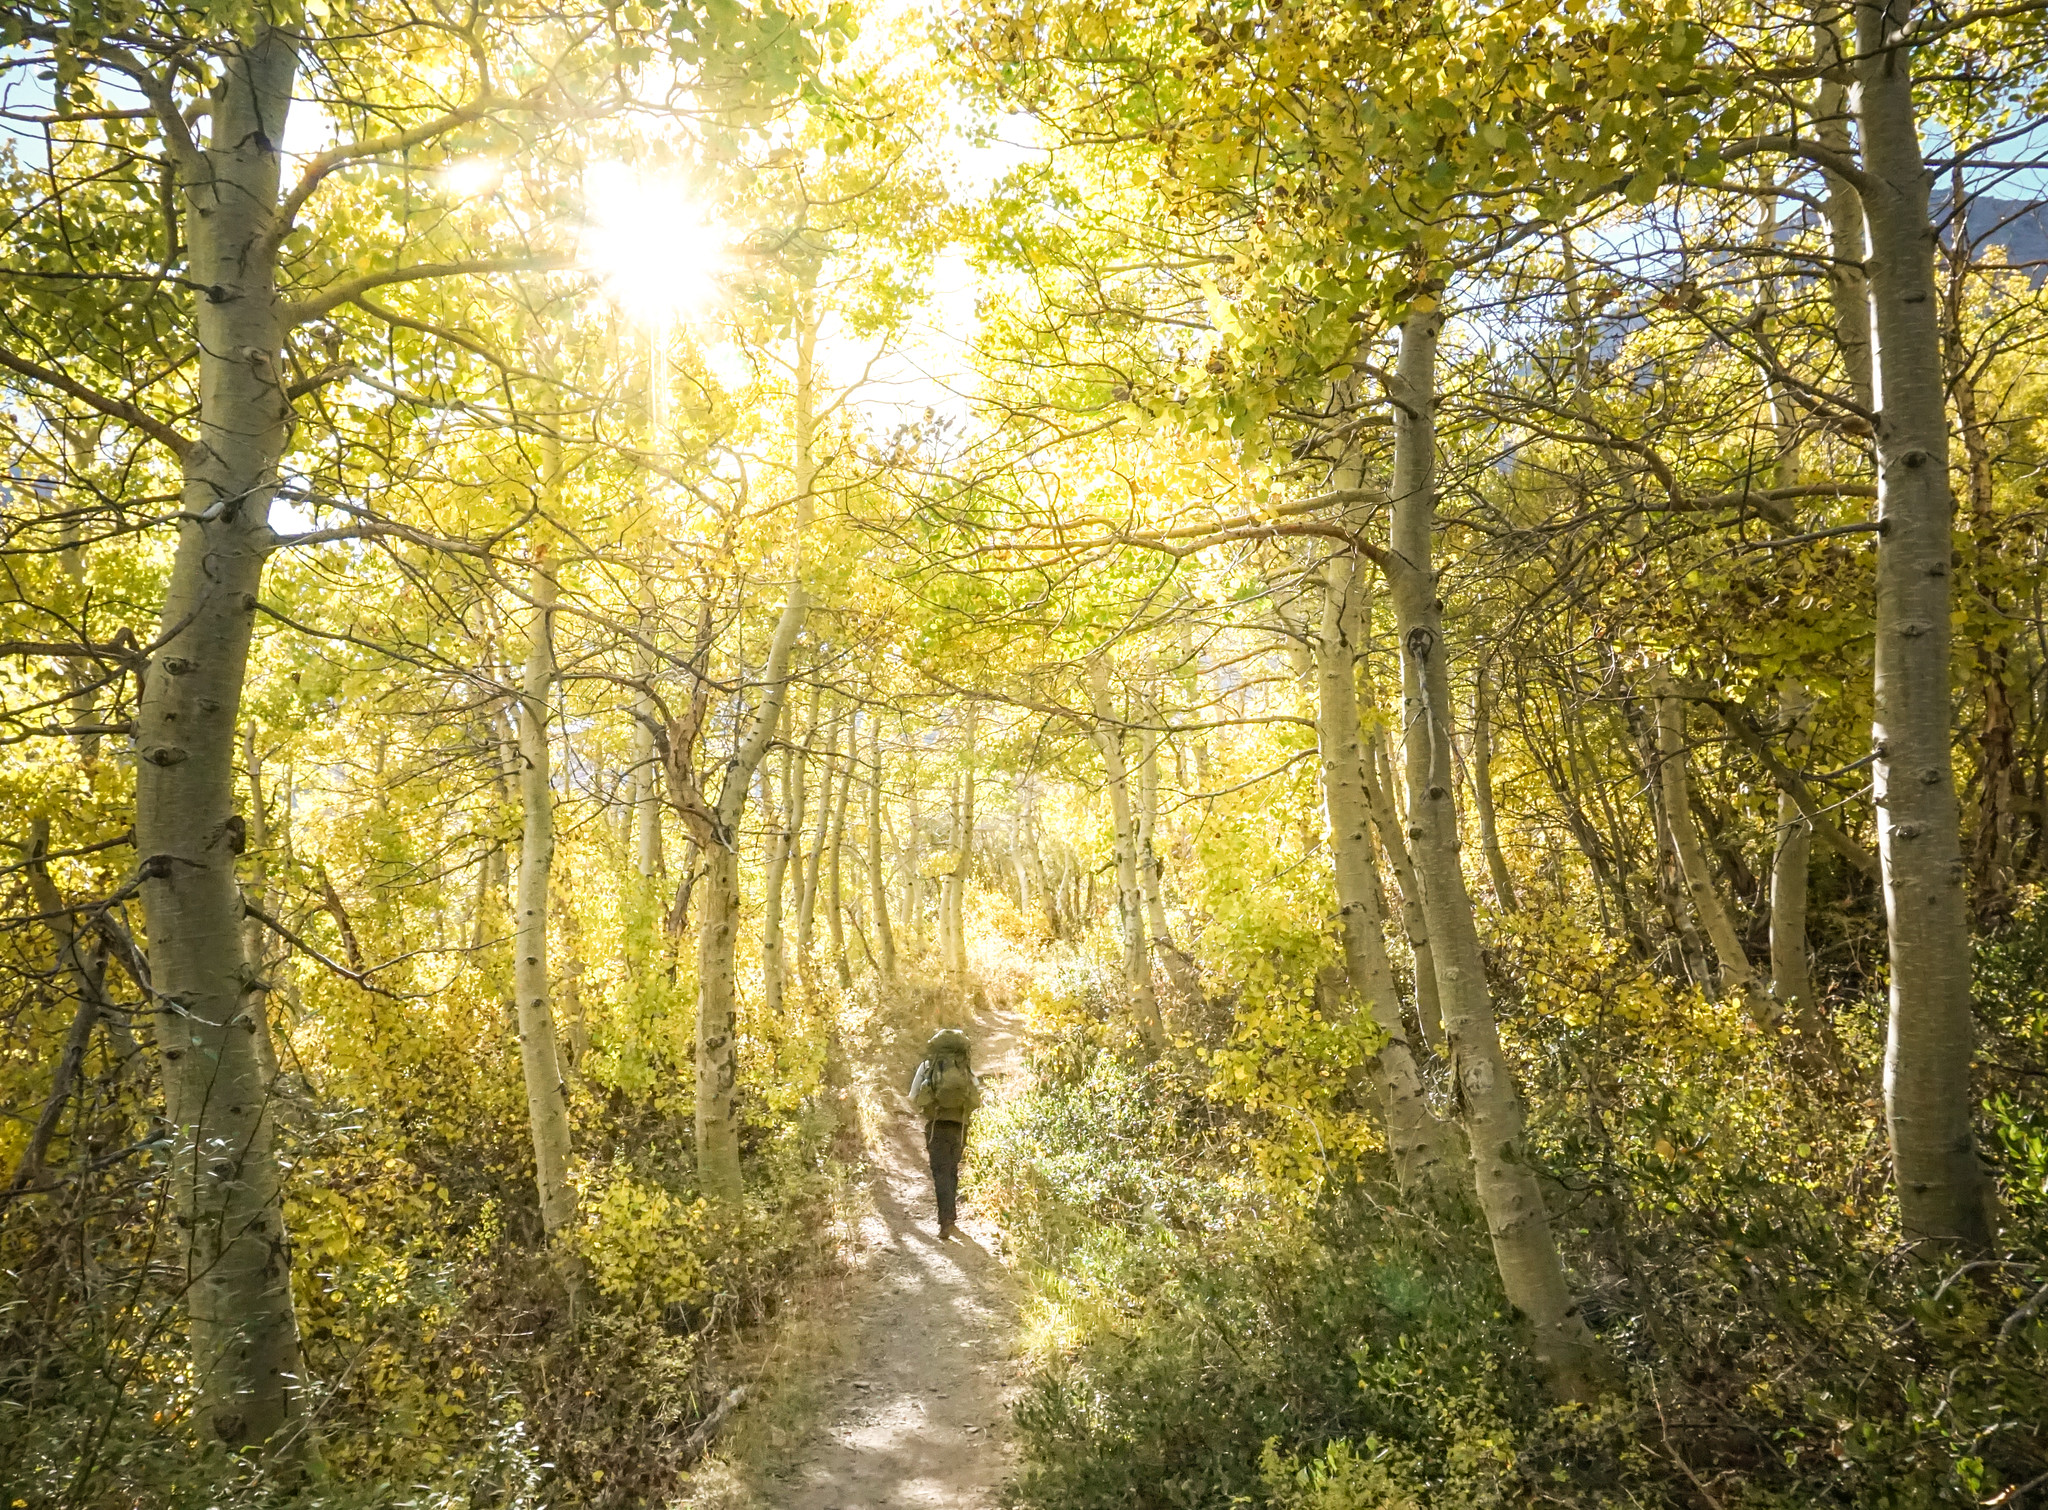 A backpacker walking through a forest of aspen trees with golden leaves